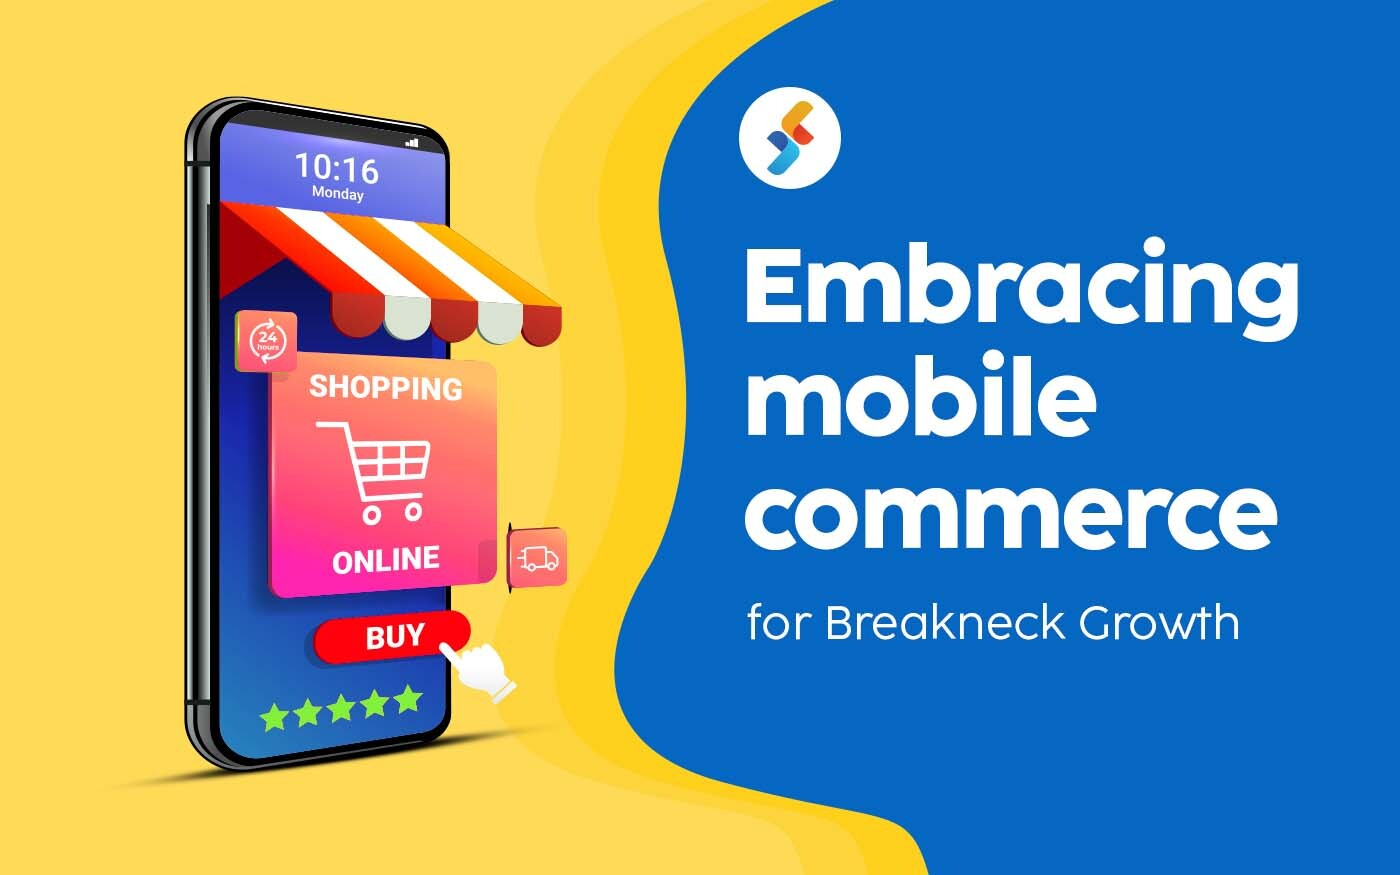 Embracing Mobile Commerce for Breakneck Growth